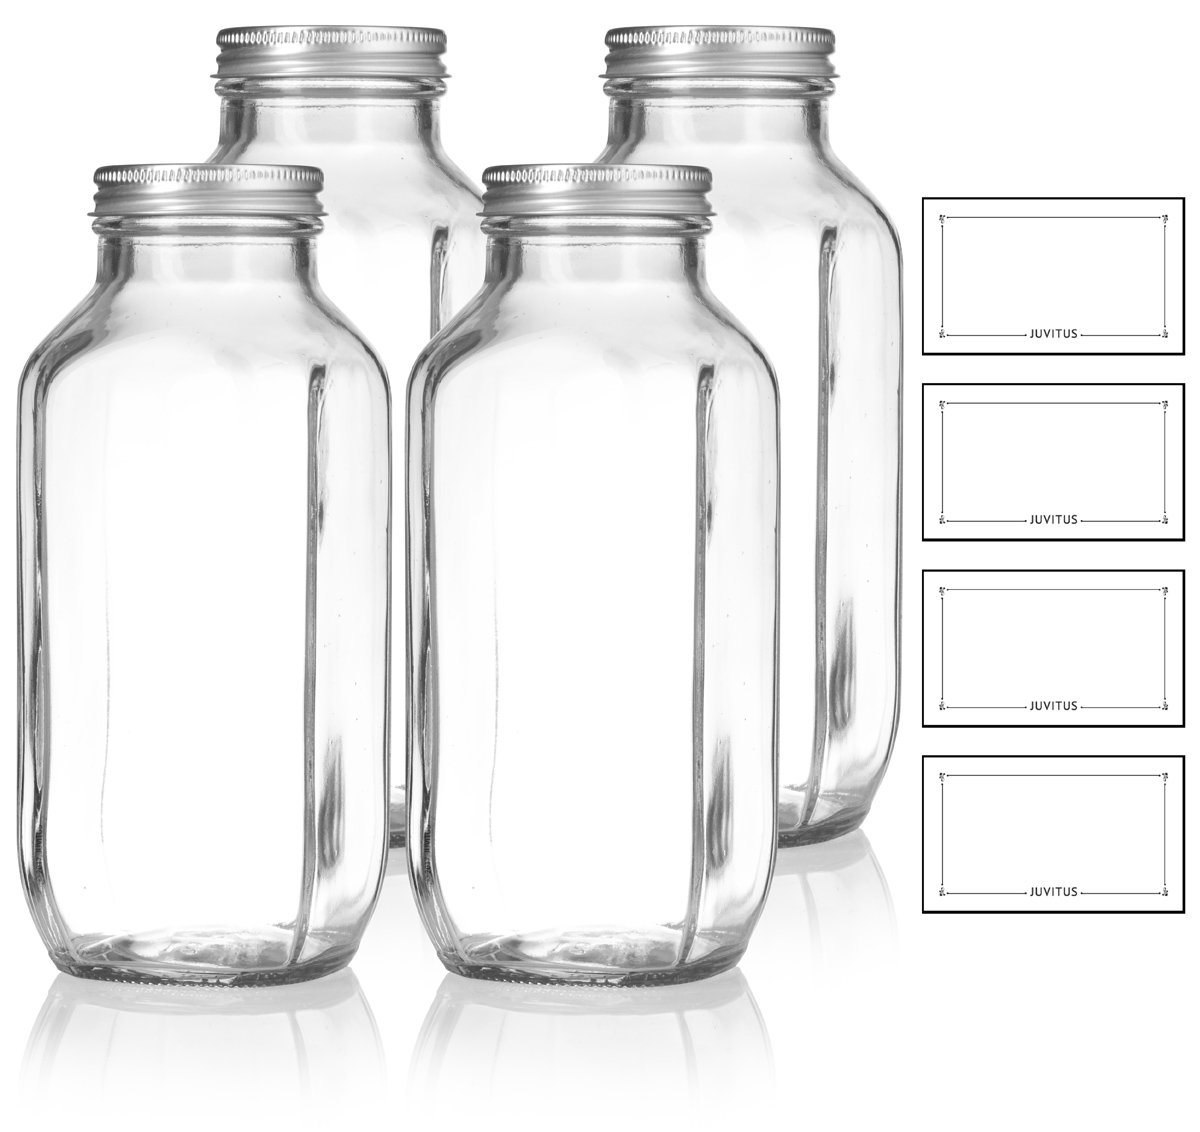 16 oz 480 ml Clear Thick Plated Glass French Square Empty Bottle Jar with Metal Silver Lid 4 Pack Perfect for Home, Travel, Juicing, Kombucha